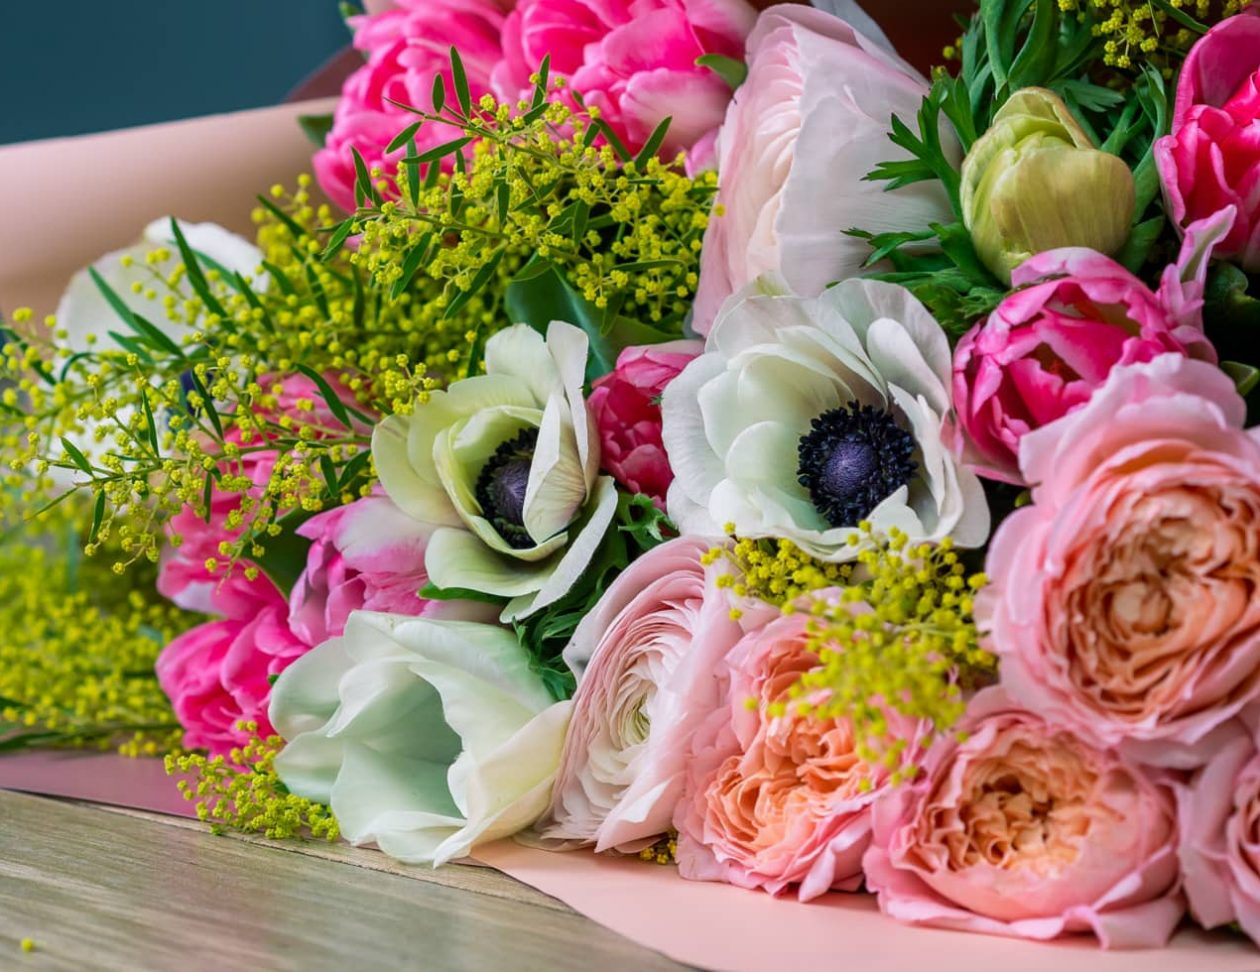 A bouquet of seasonal flowers on a table